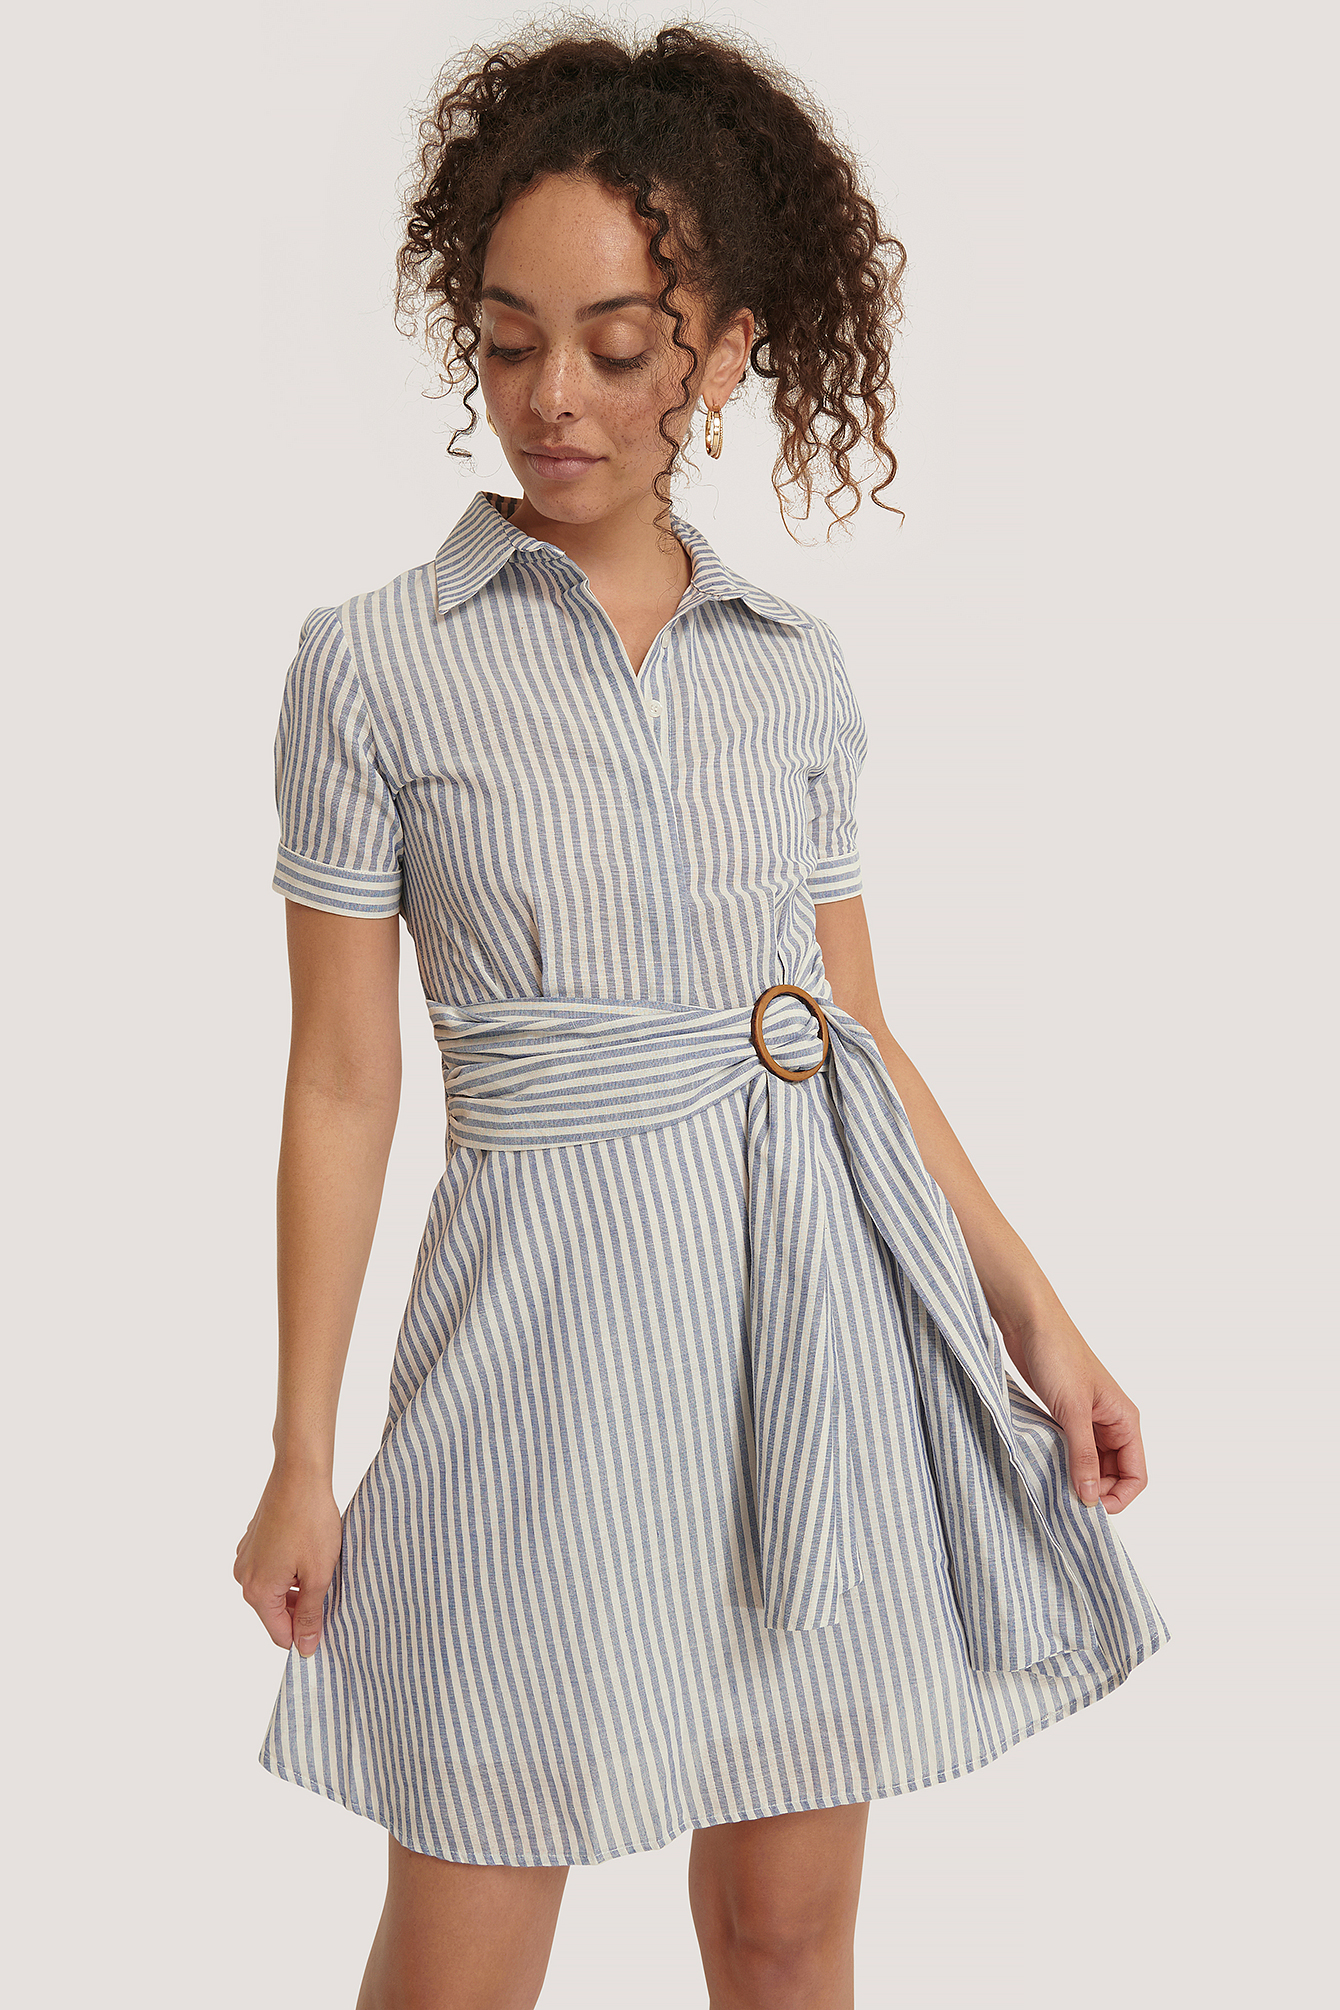 Indigo Belt Detailed Mini Dress